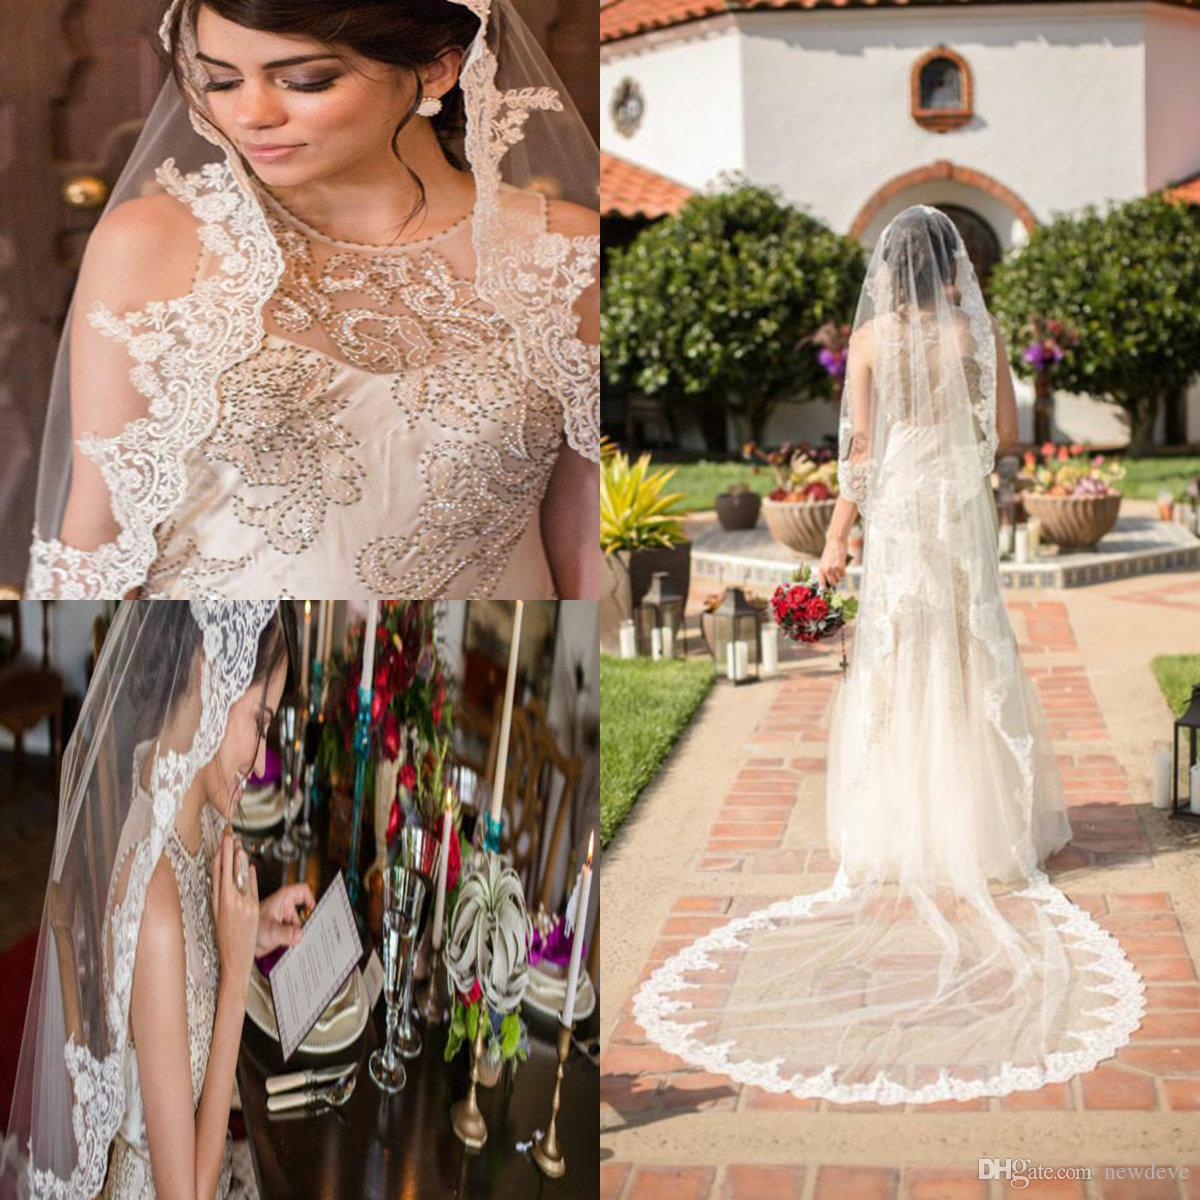 39ed749fec89 2019 Stunning Bridal Veils Custom Made Charming White Ivory Champagne Lace  2 Layers Wedding Veils With Applique Comb For Wedding Dress How To Make  Bridal ...